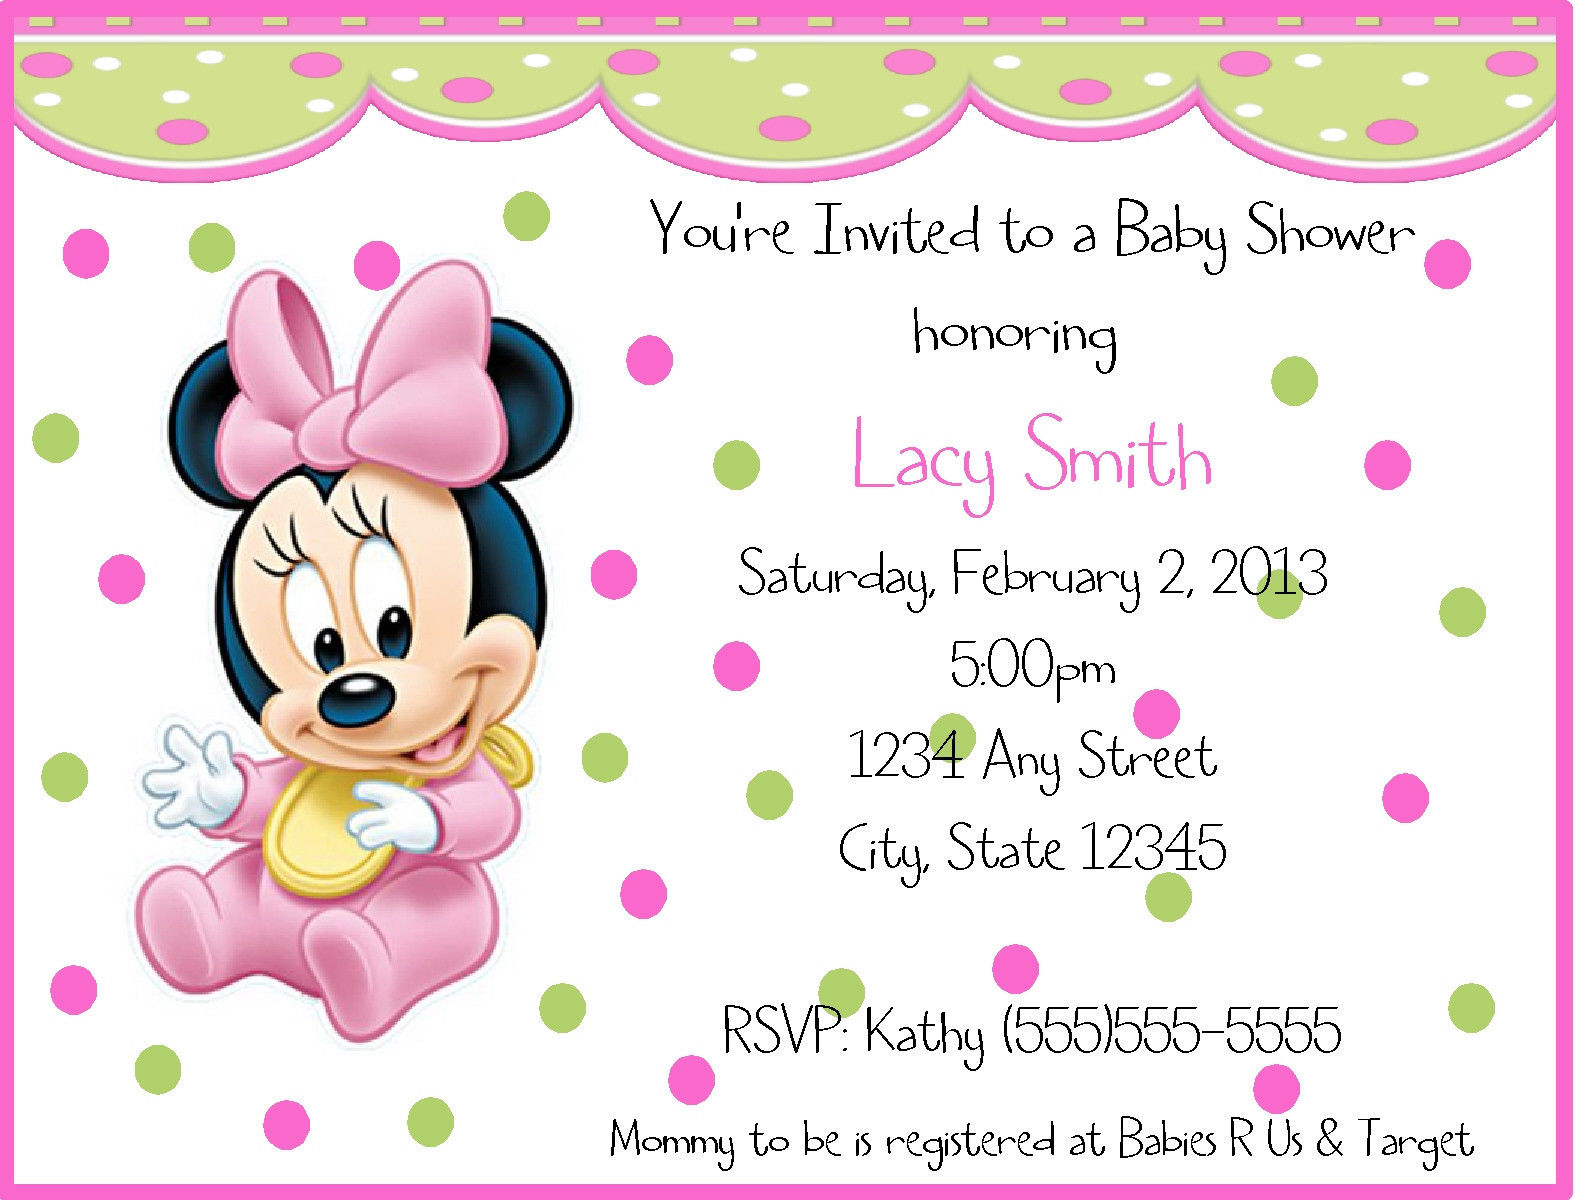 Inspirational Baby Shower Invitations Interesting Free Printable Minnie Mouse Baby for Minnie Mouse Baby Shower Invitations